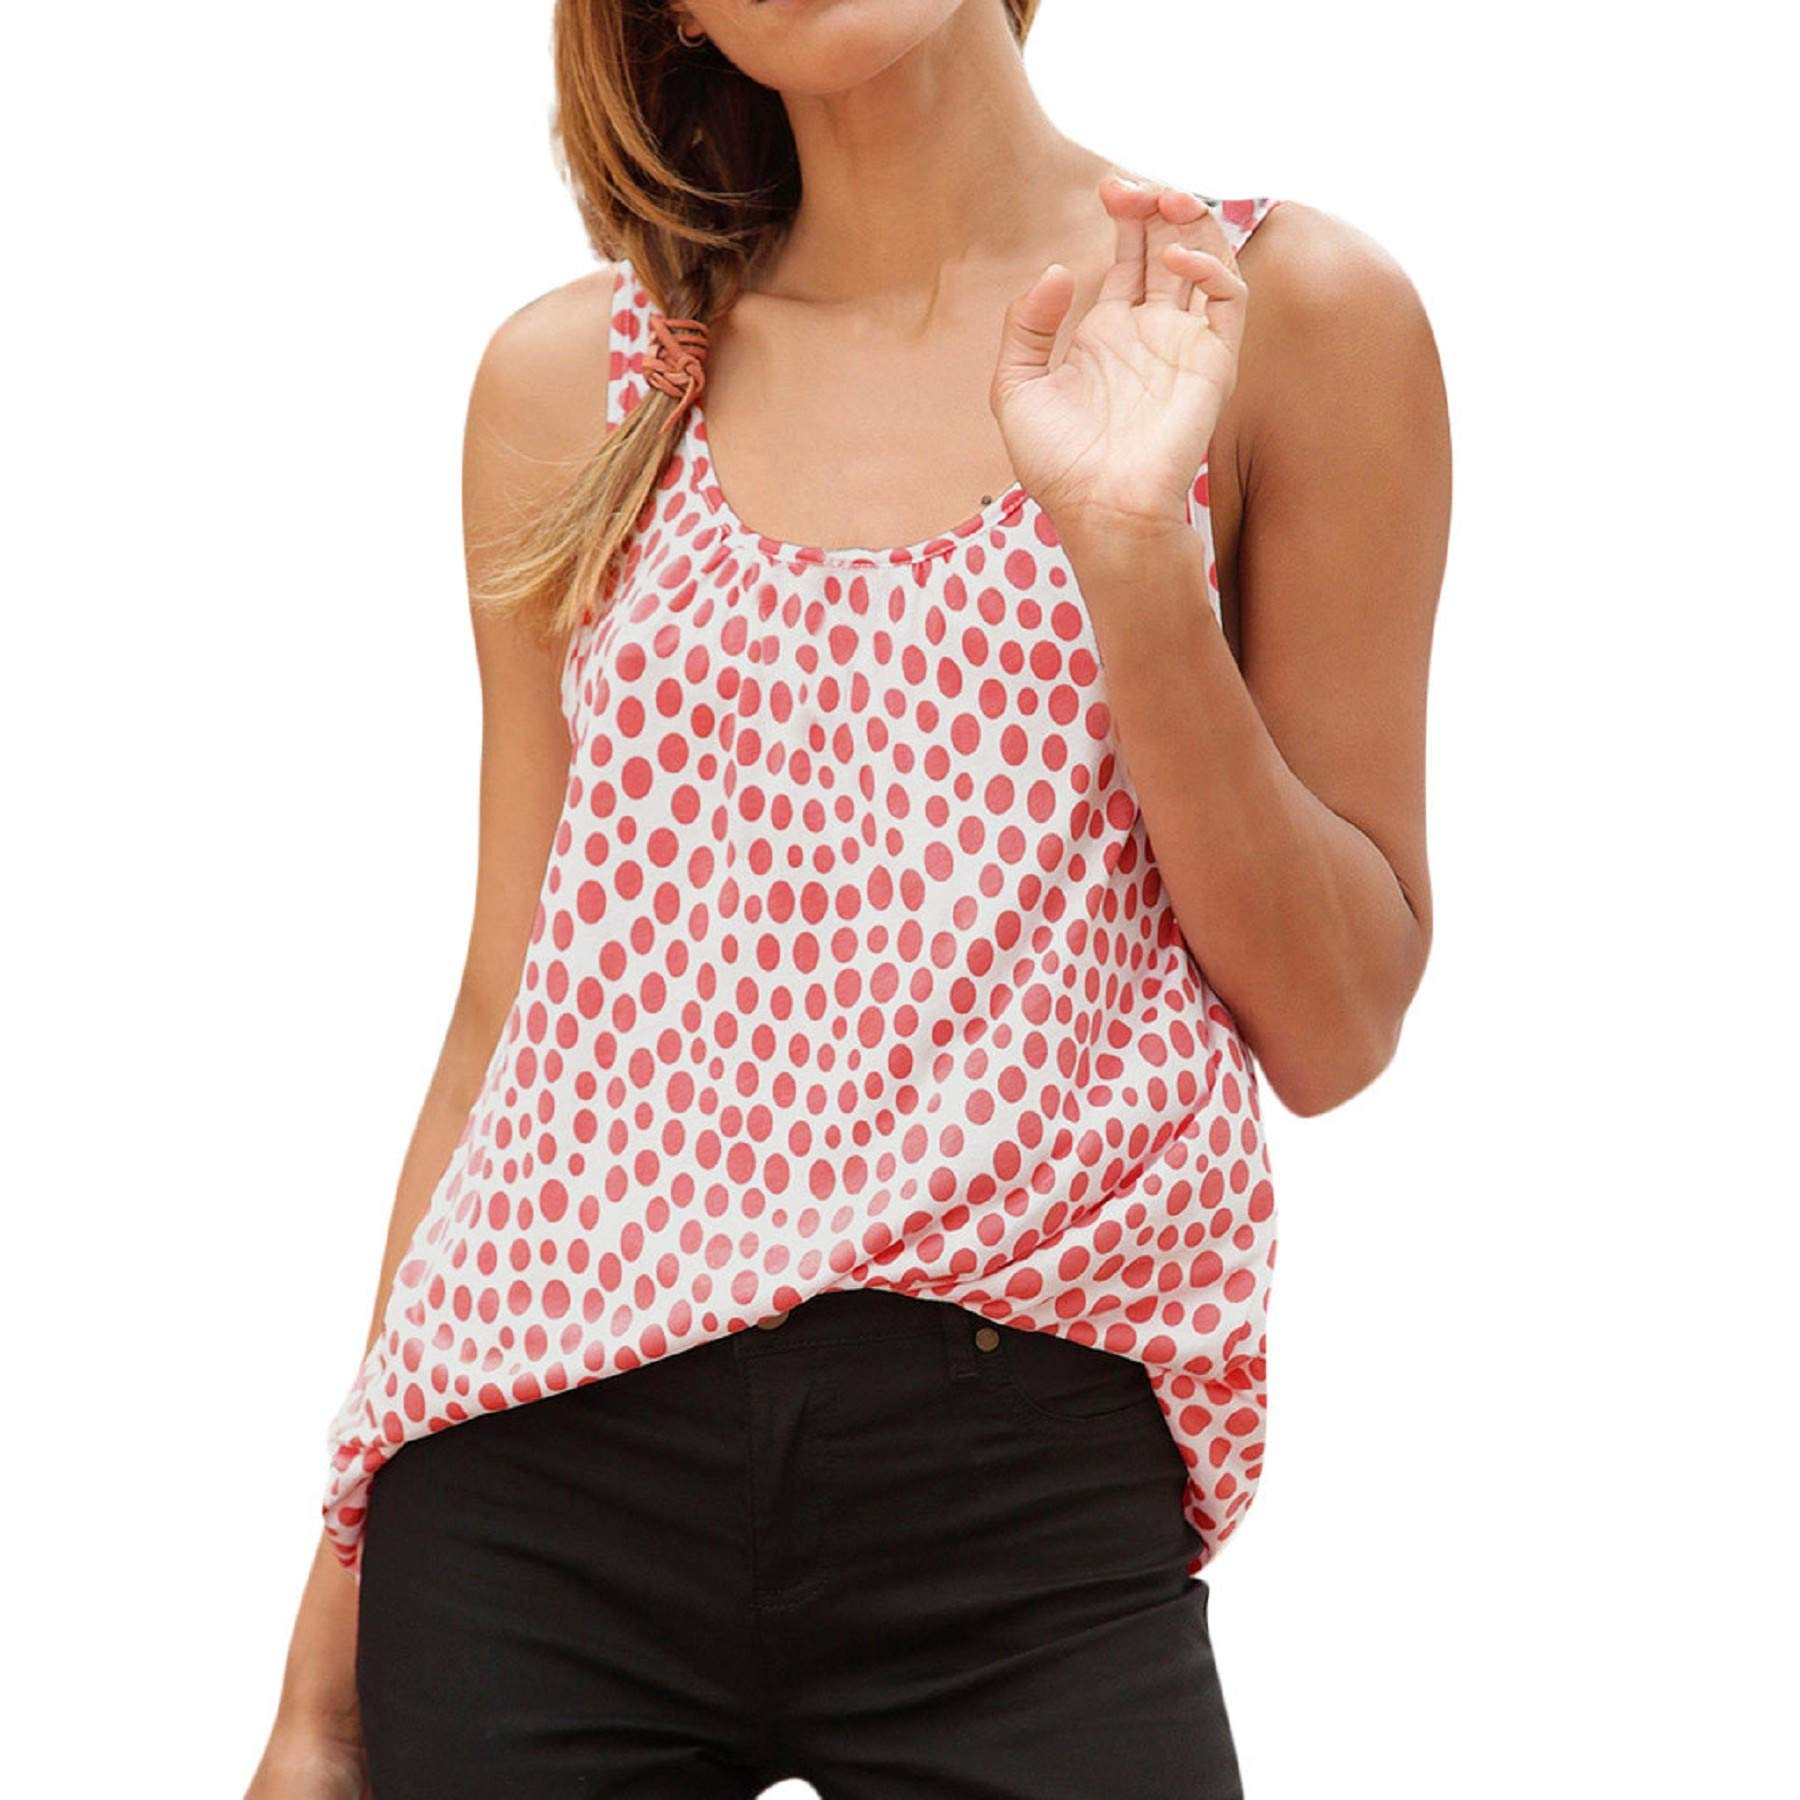 Women Summer Halter Sleeveless Polka Dot Tank Top Sexy Casual Strappy Vest Tops Loose Blouse Pink